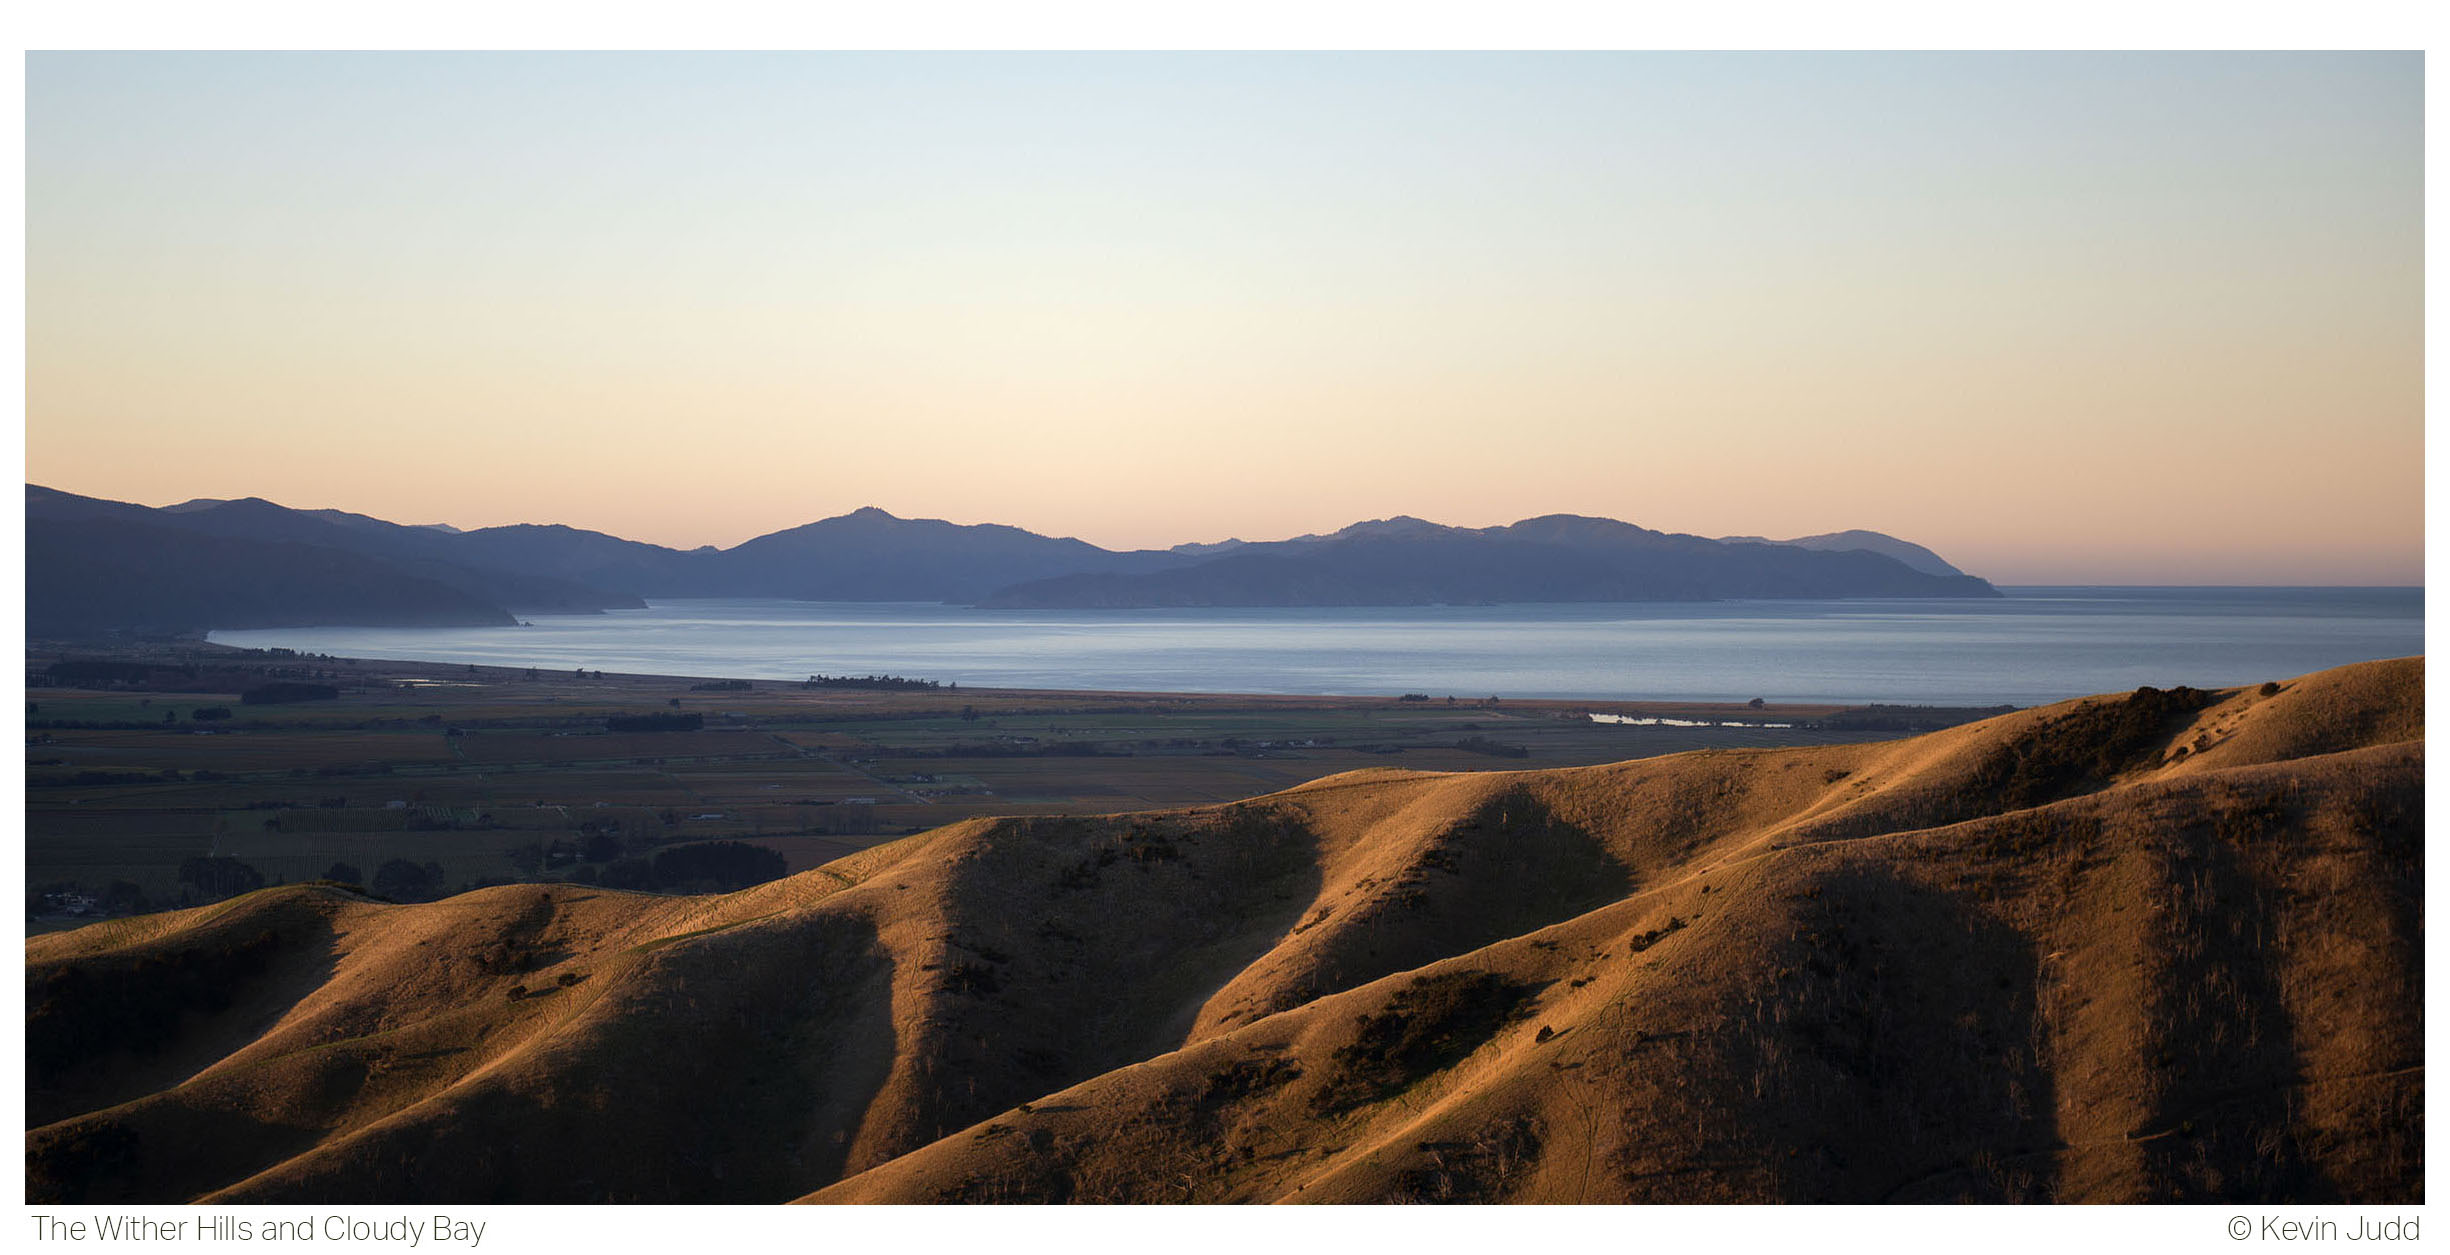 The wither hills - MARLBOROUGH